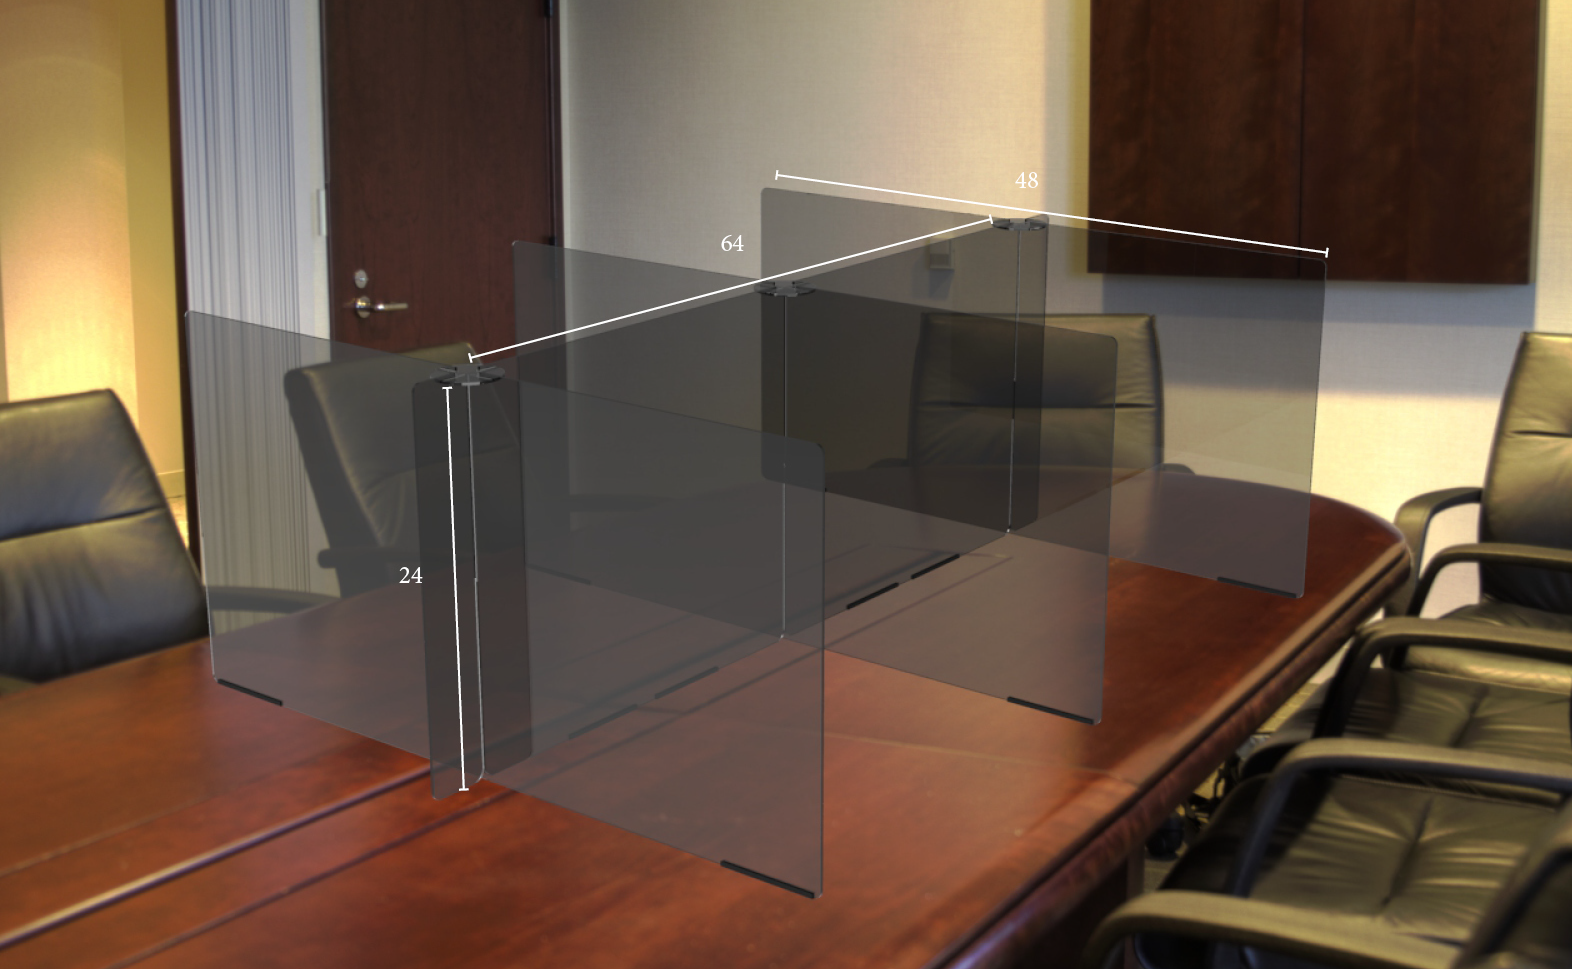 Smoked Conference Table Divider Protective Shield | Shop Rodgers Wade